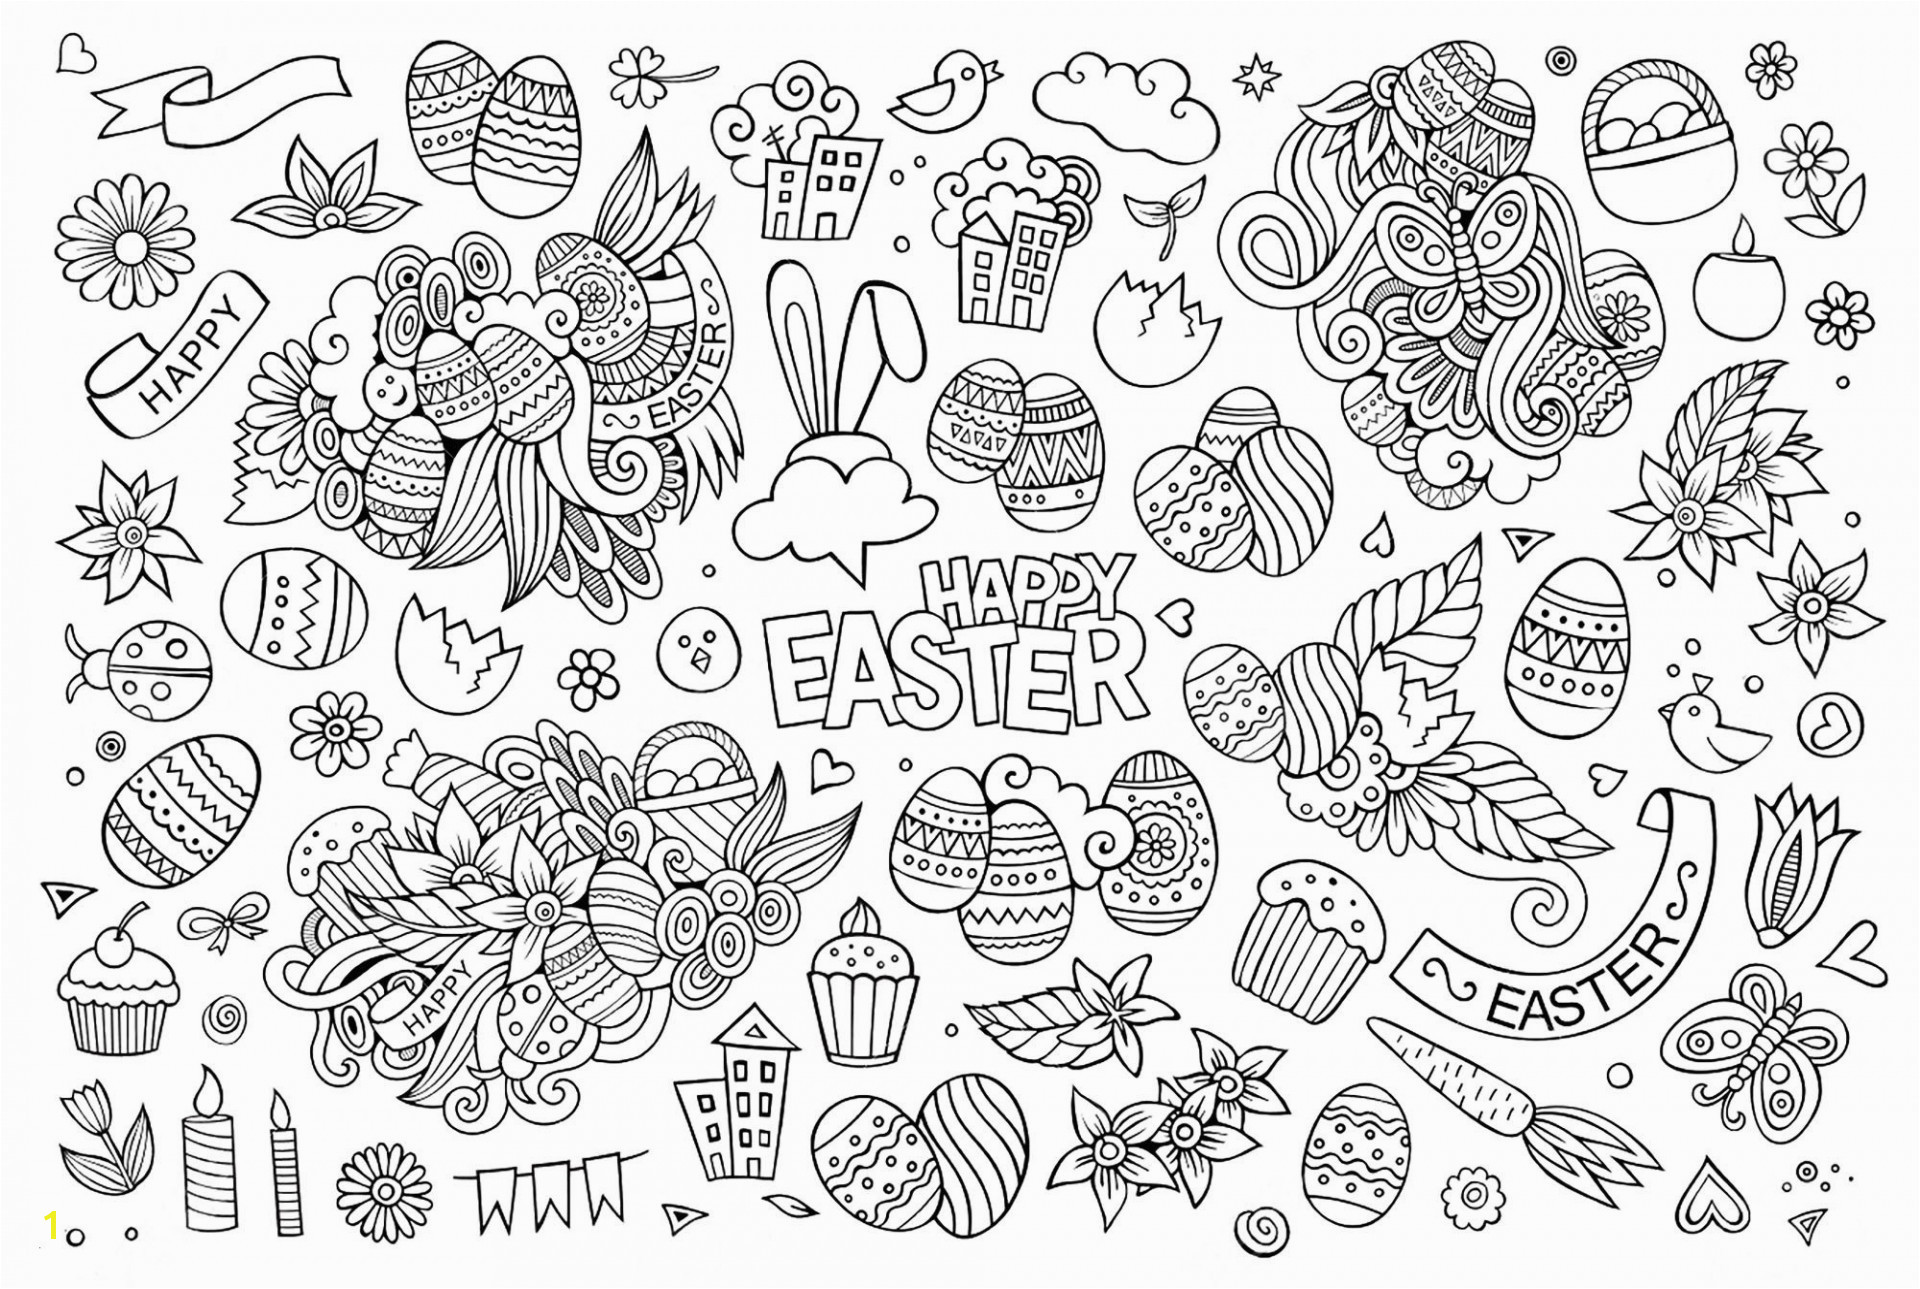 Easter Coloring Pages Printable Bugs Bunny Easter Coloring Pages New Ziemlich Tiny toons Coloring